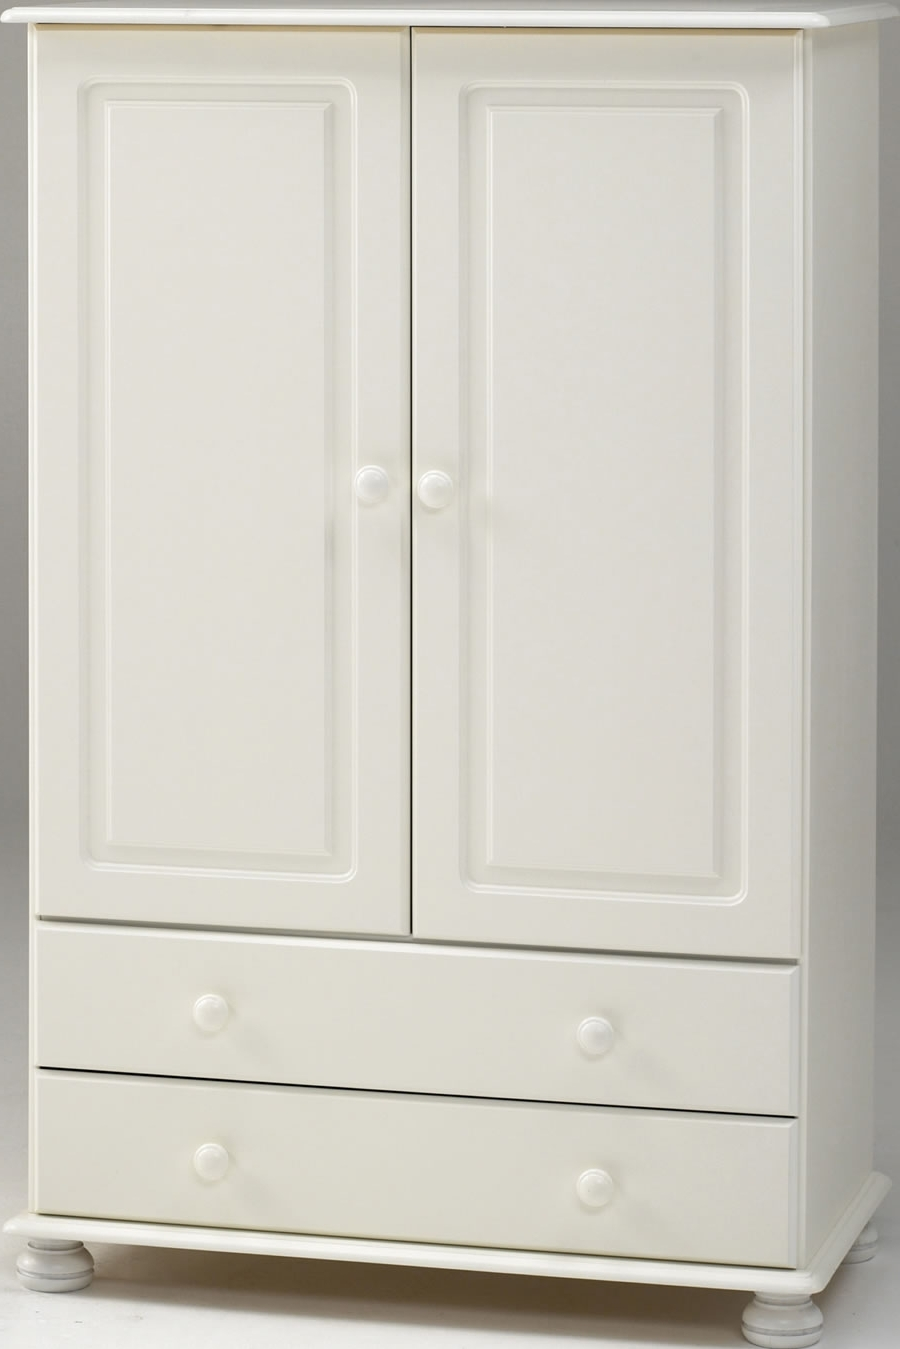 Richmond Wardrobes Regarding Widely Used White 2 Door Wardrobe – Steens Richmond (View 11 of 15)